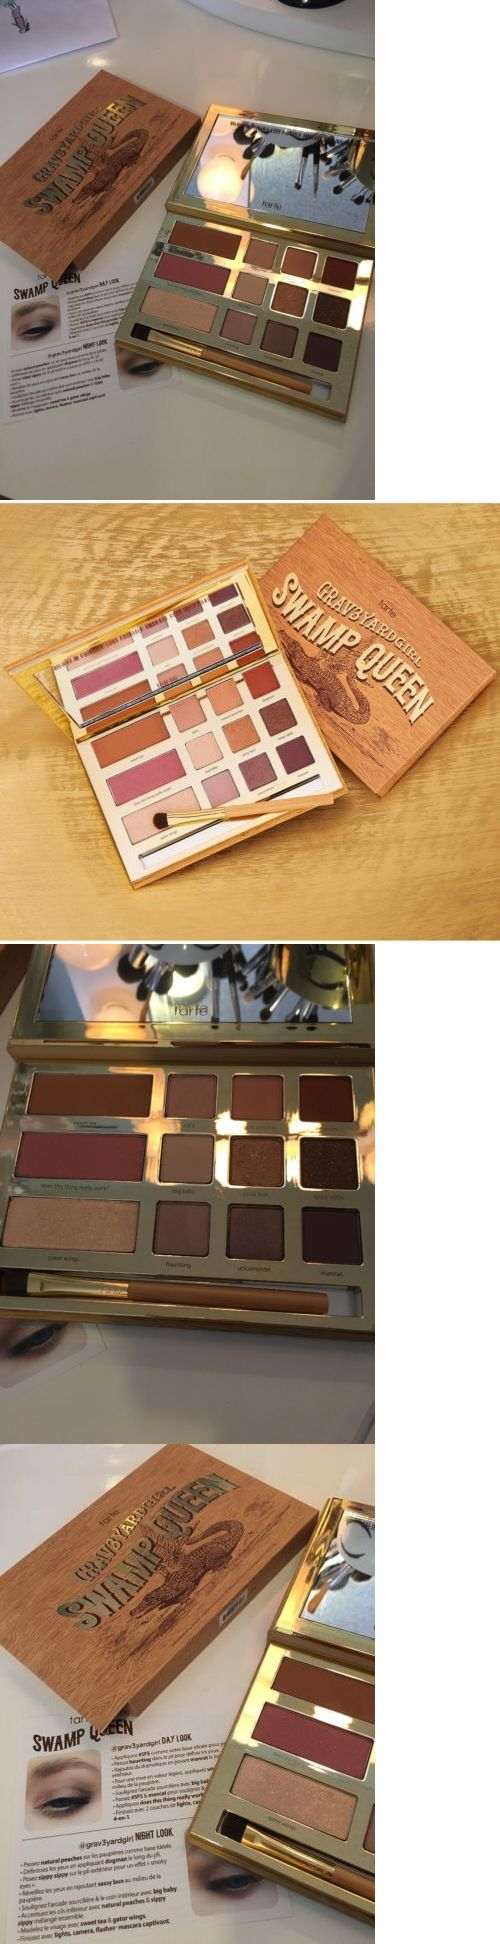 Bronzers and Highlighters: Tarte Graveyard Girl Swamp Queen *Eye And Cheek Palette With Brush In Box Read Des -> BUY IT NOW ONLY: $36 on eBay!